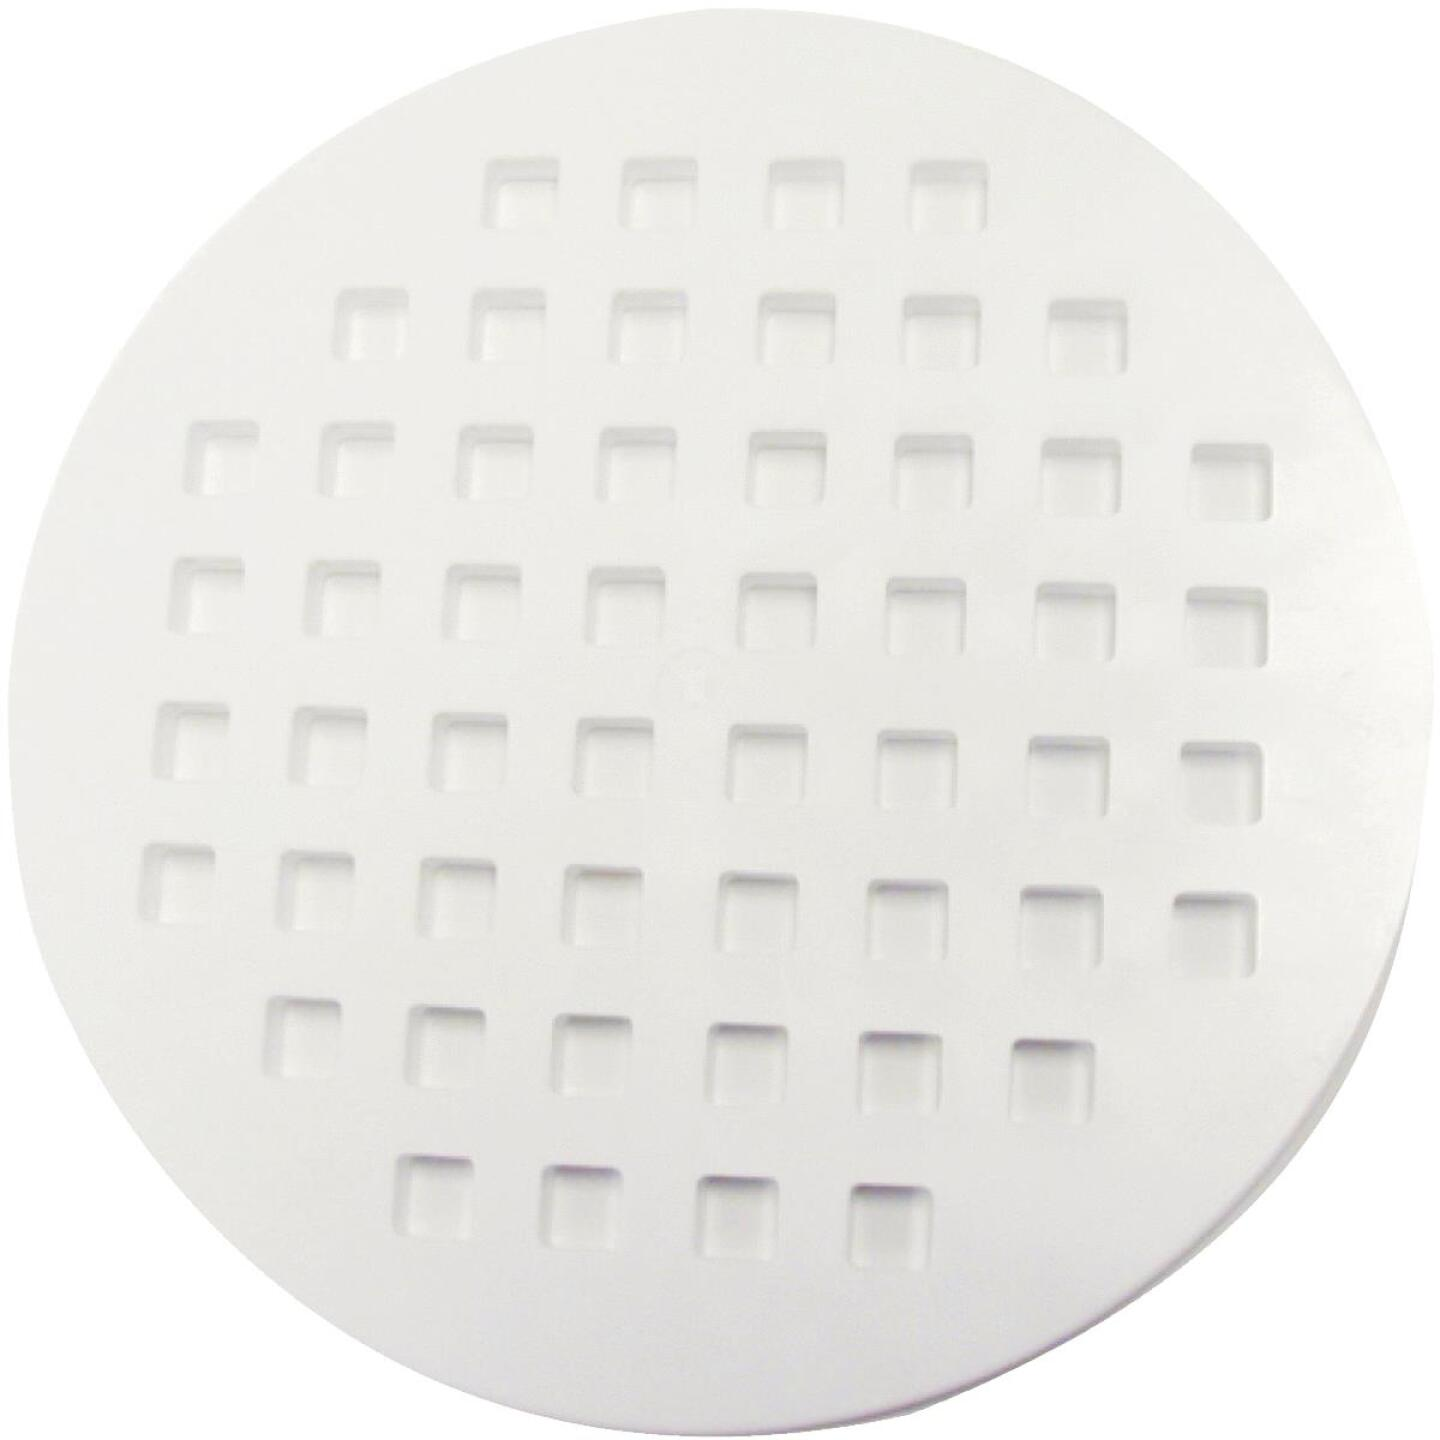 Norpro 10 In. Dia. Lattice Pie Top Cutter Image 1